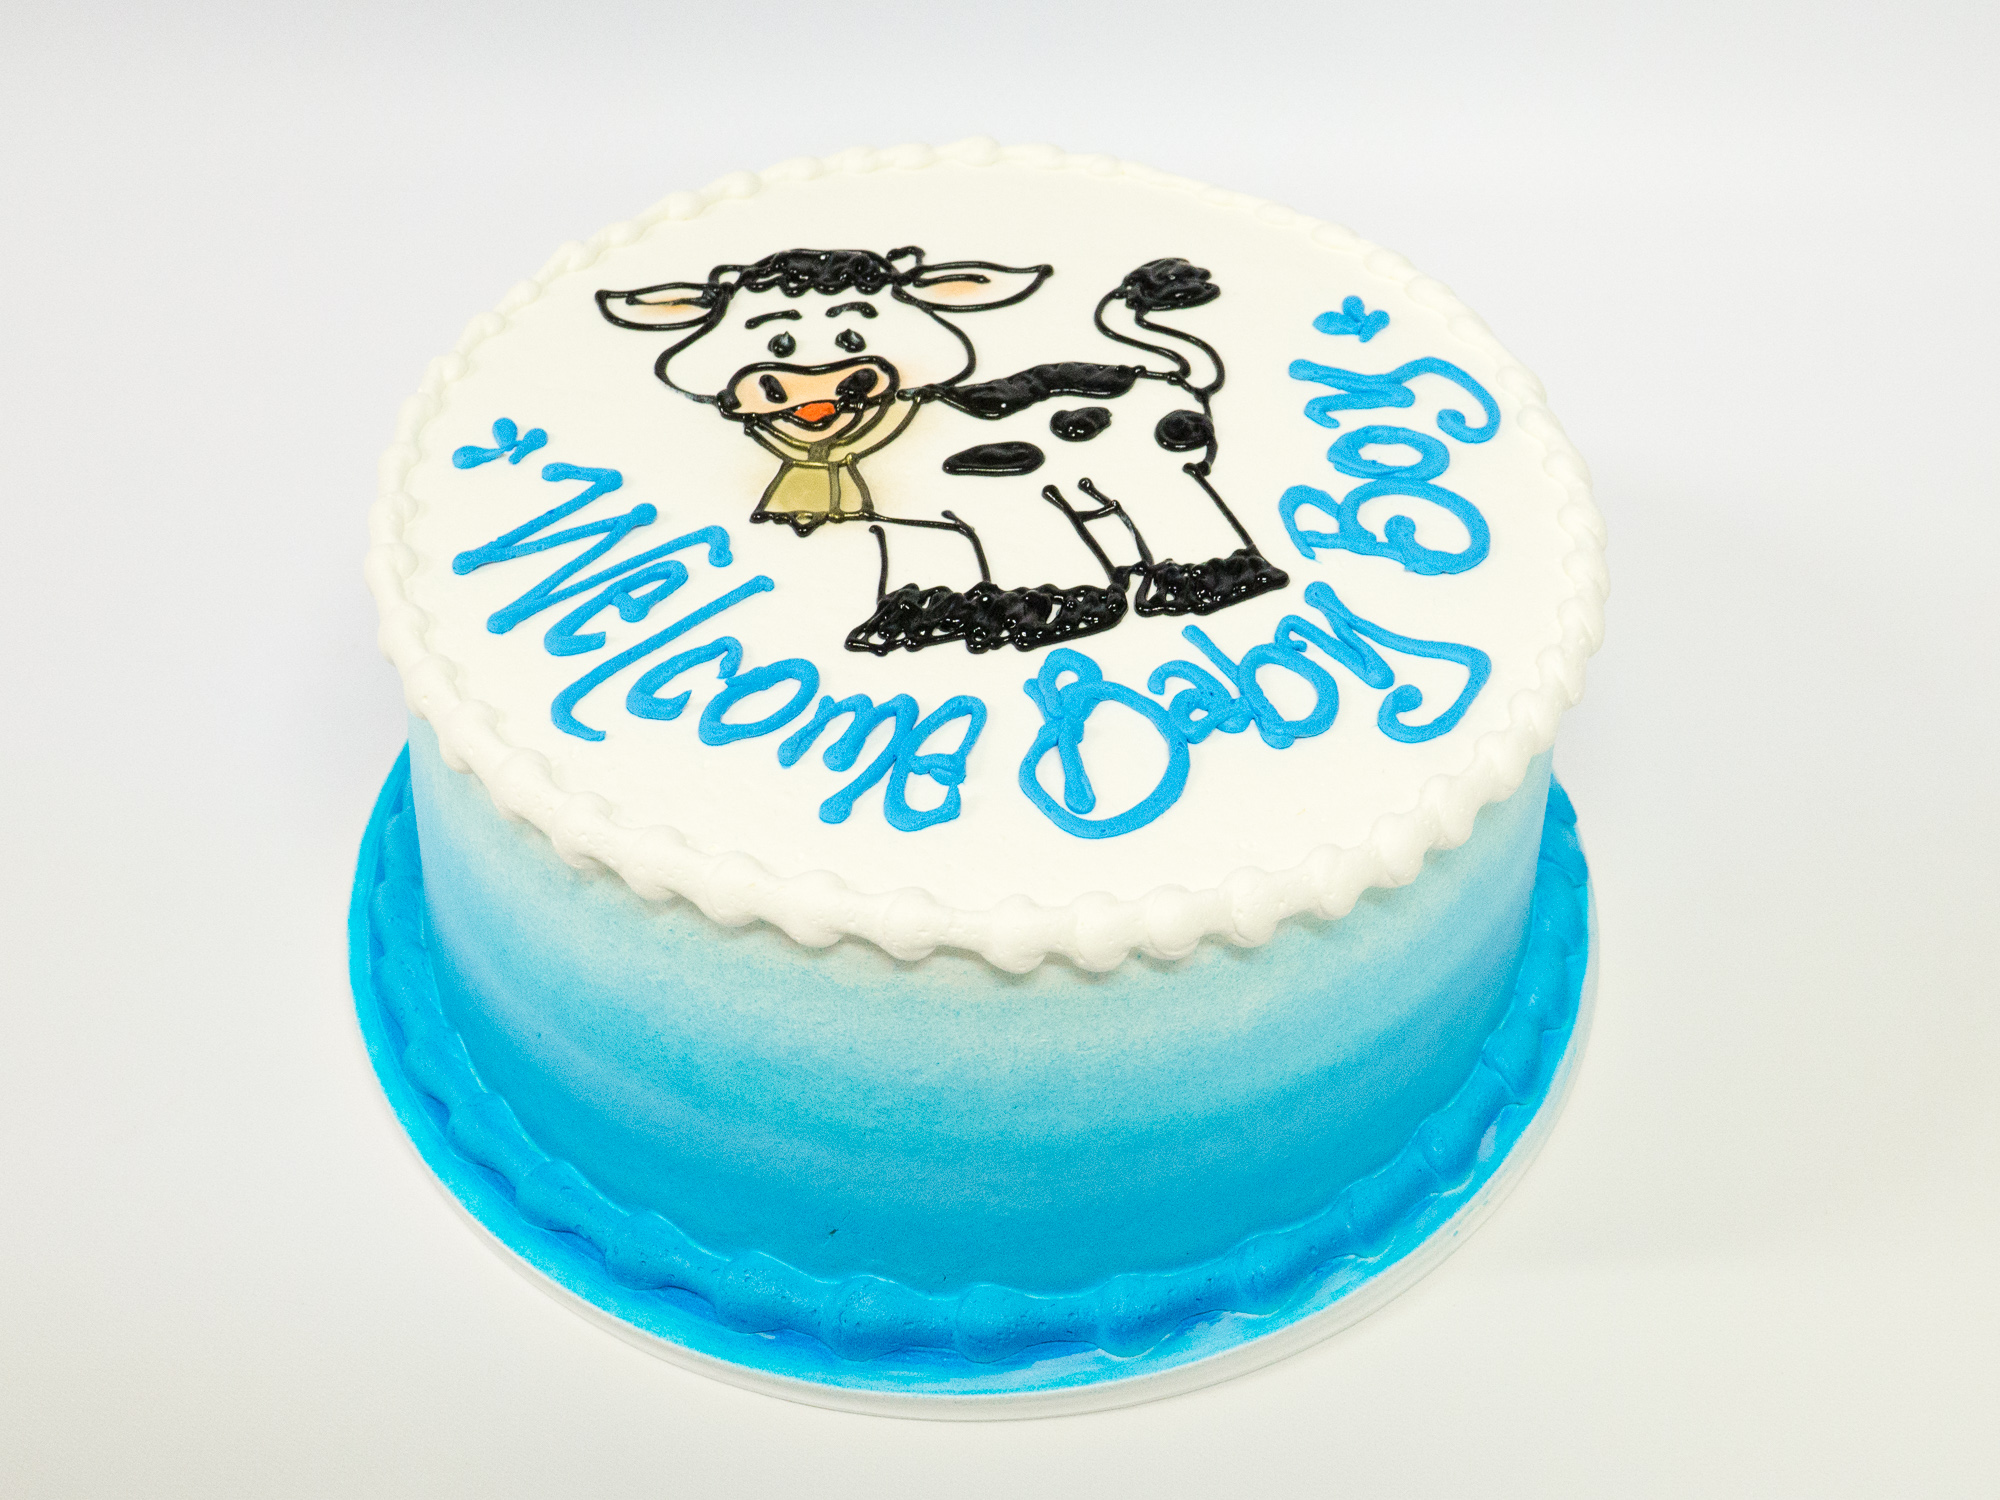 Pleasing Photo Of A Cow Baby Boy Birthday Cake Pattys Cakes And Desserts Personalised Birthday Cards Veneteletsinfo